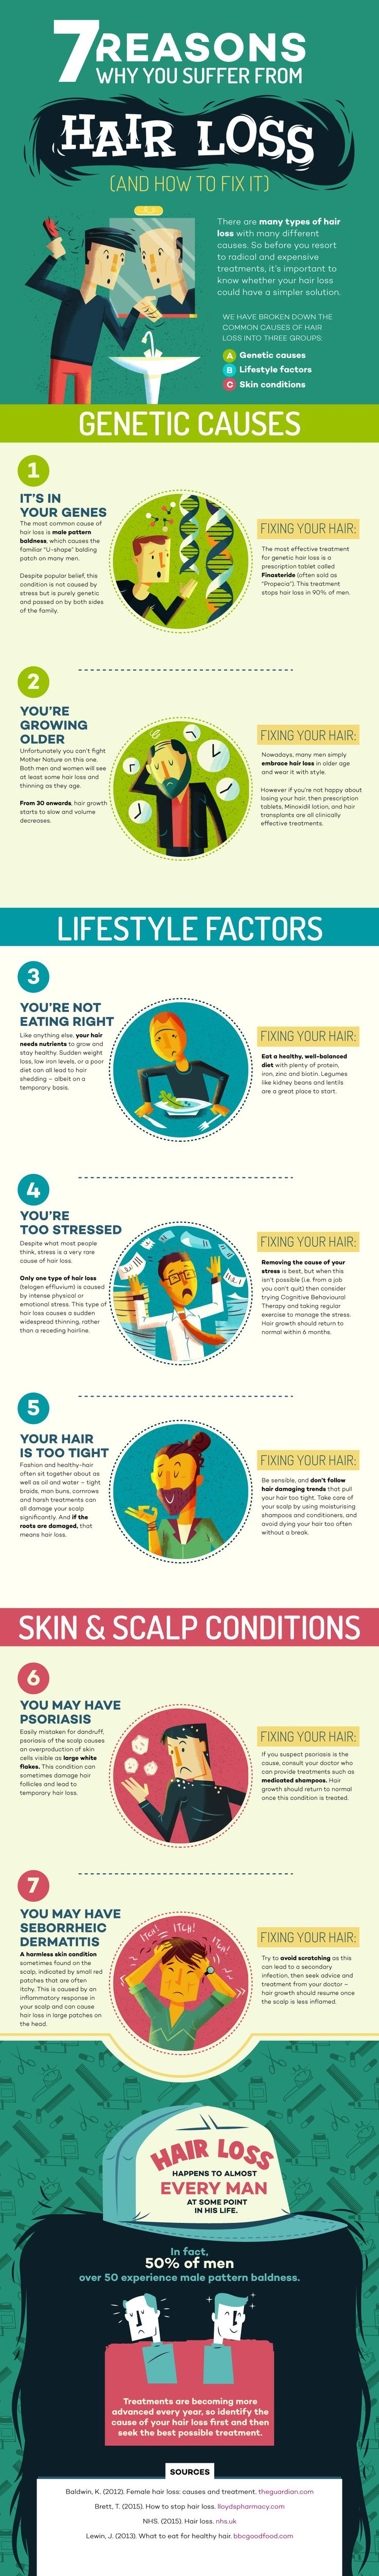 7 Reasons You're Suffering From Hairloss